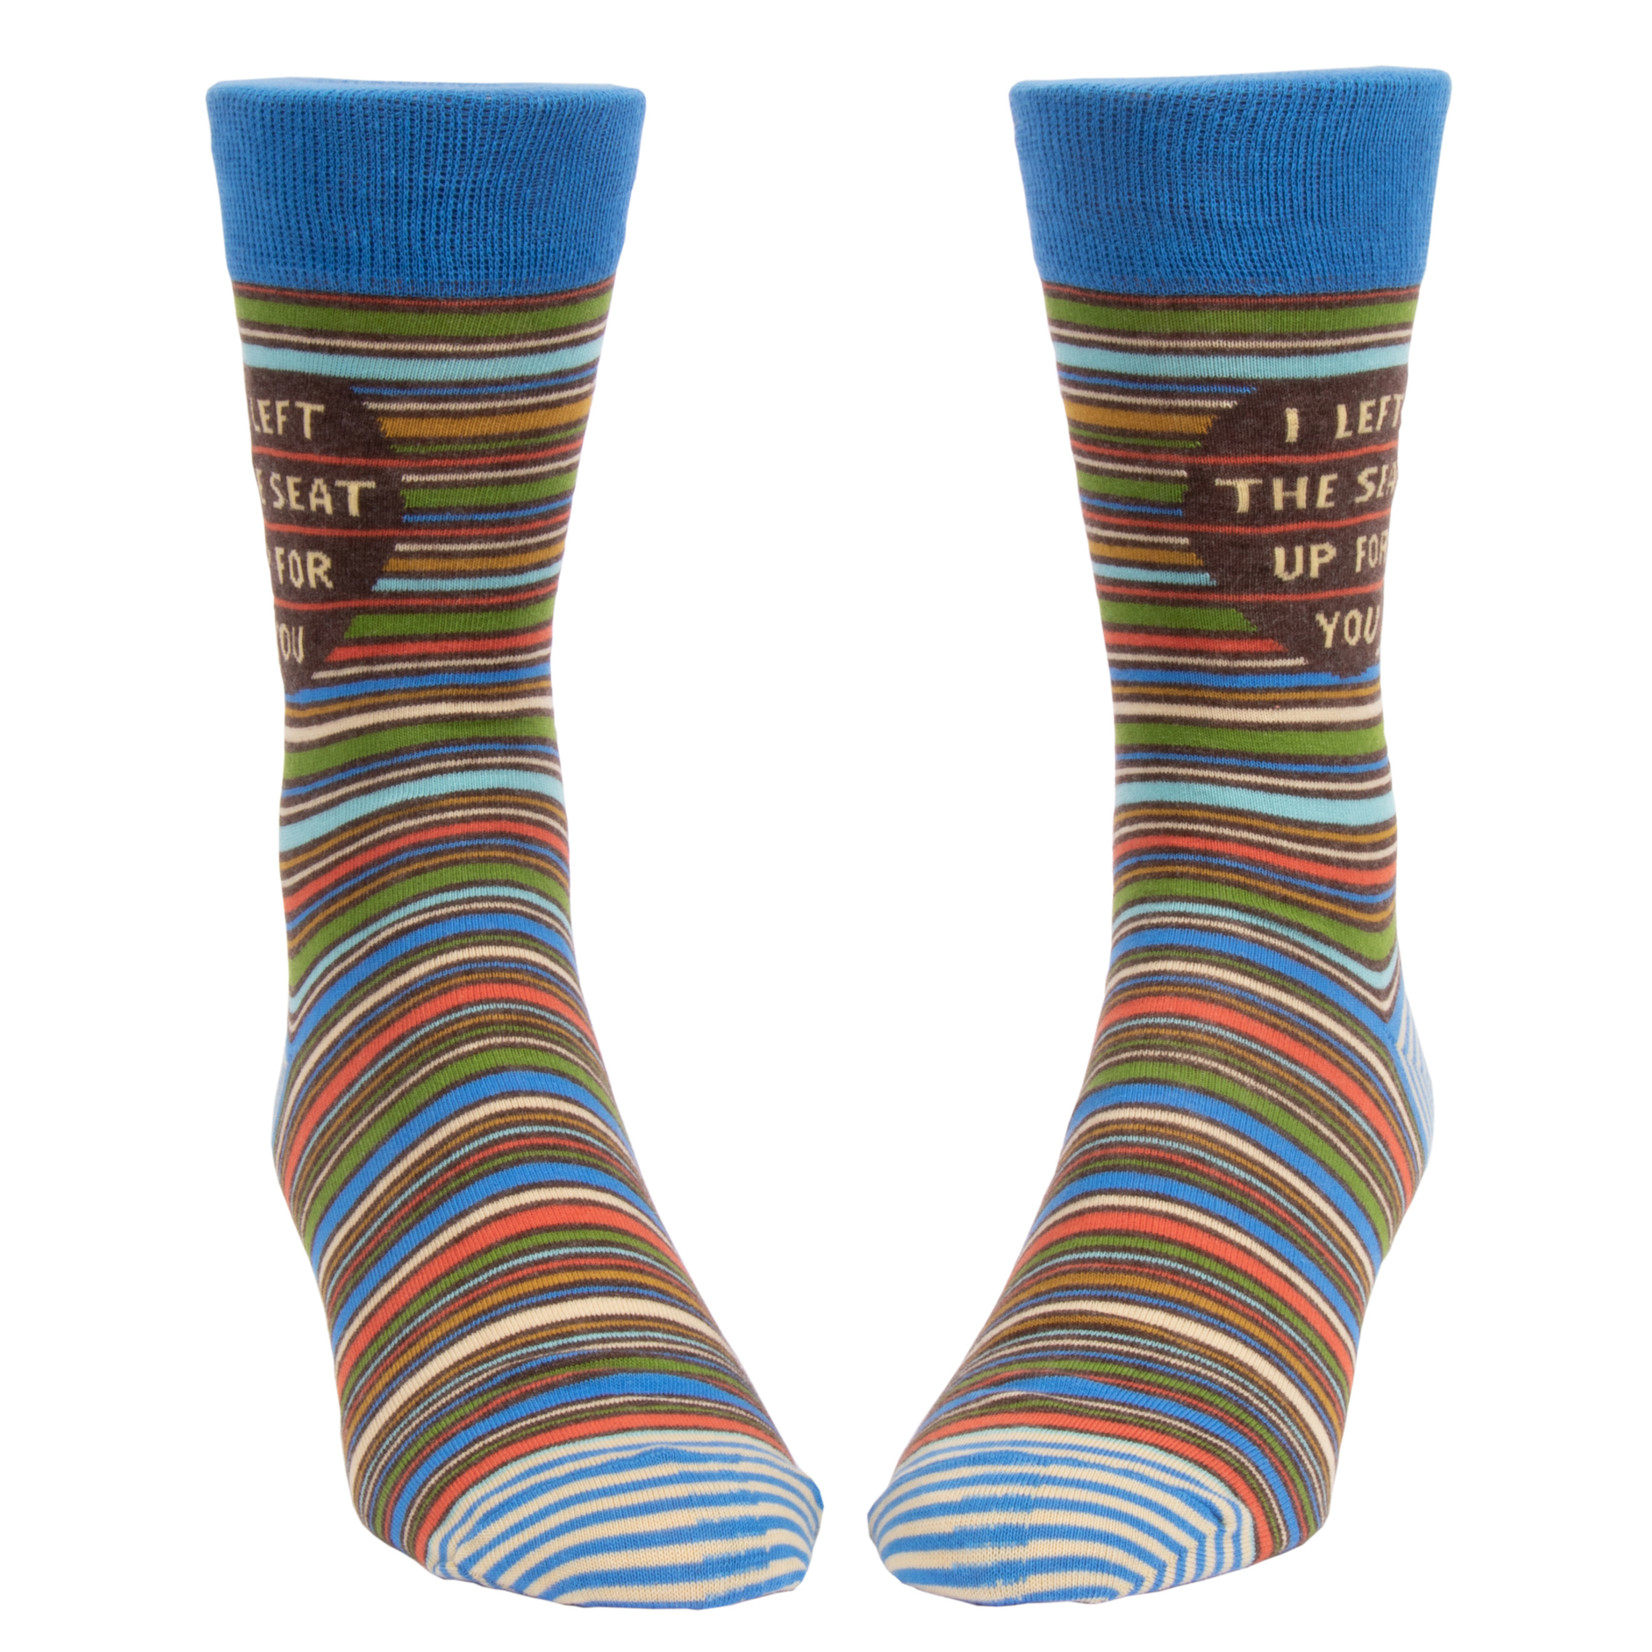 Blue Q I Left The Seat Up  For You M - Crew Socks